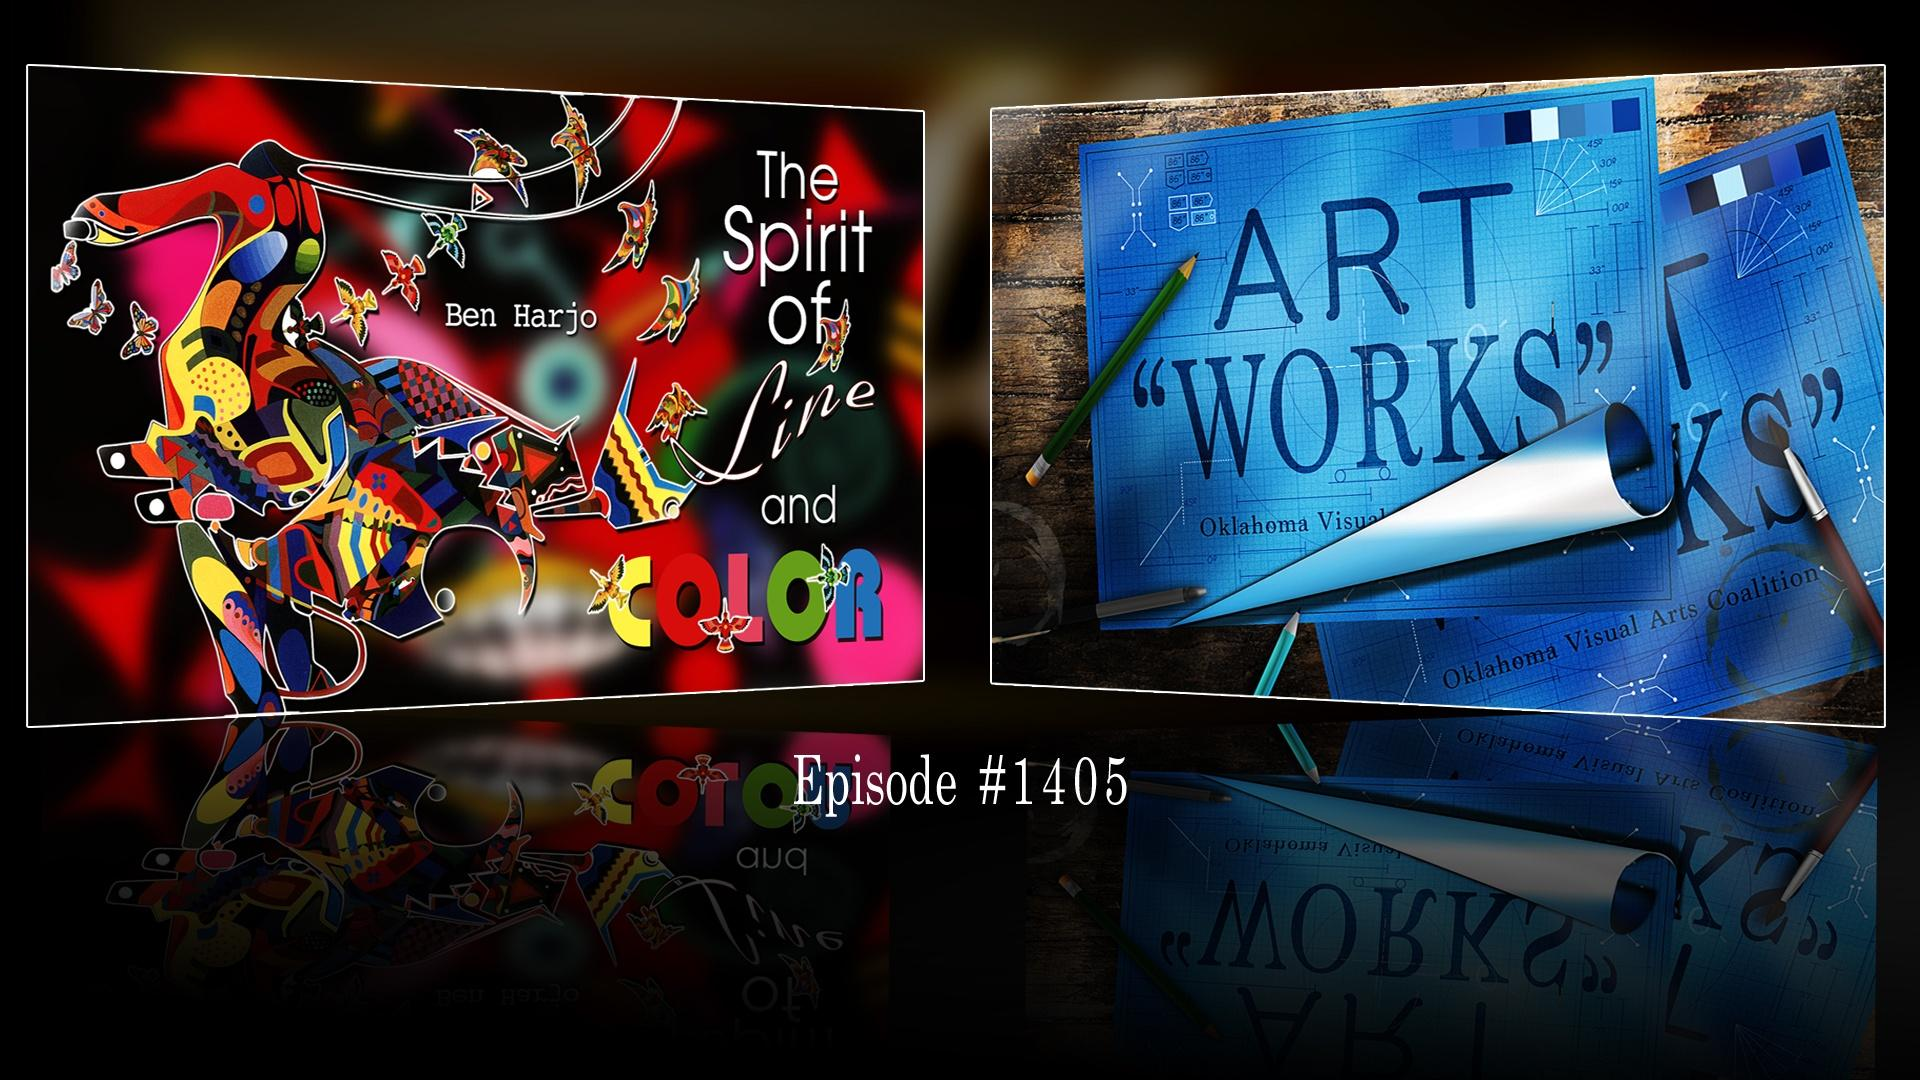 Video 1405 art works the spirit of line and color for Oeta schedule